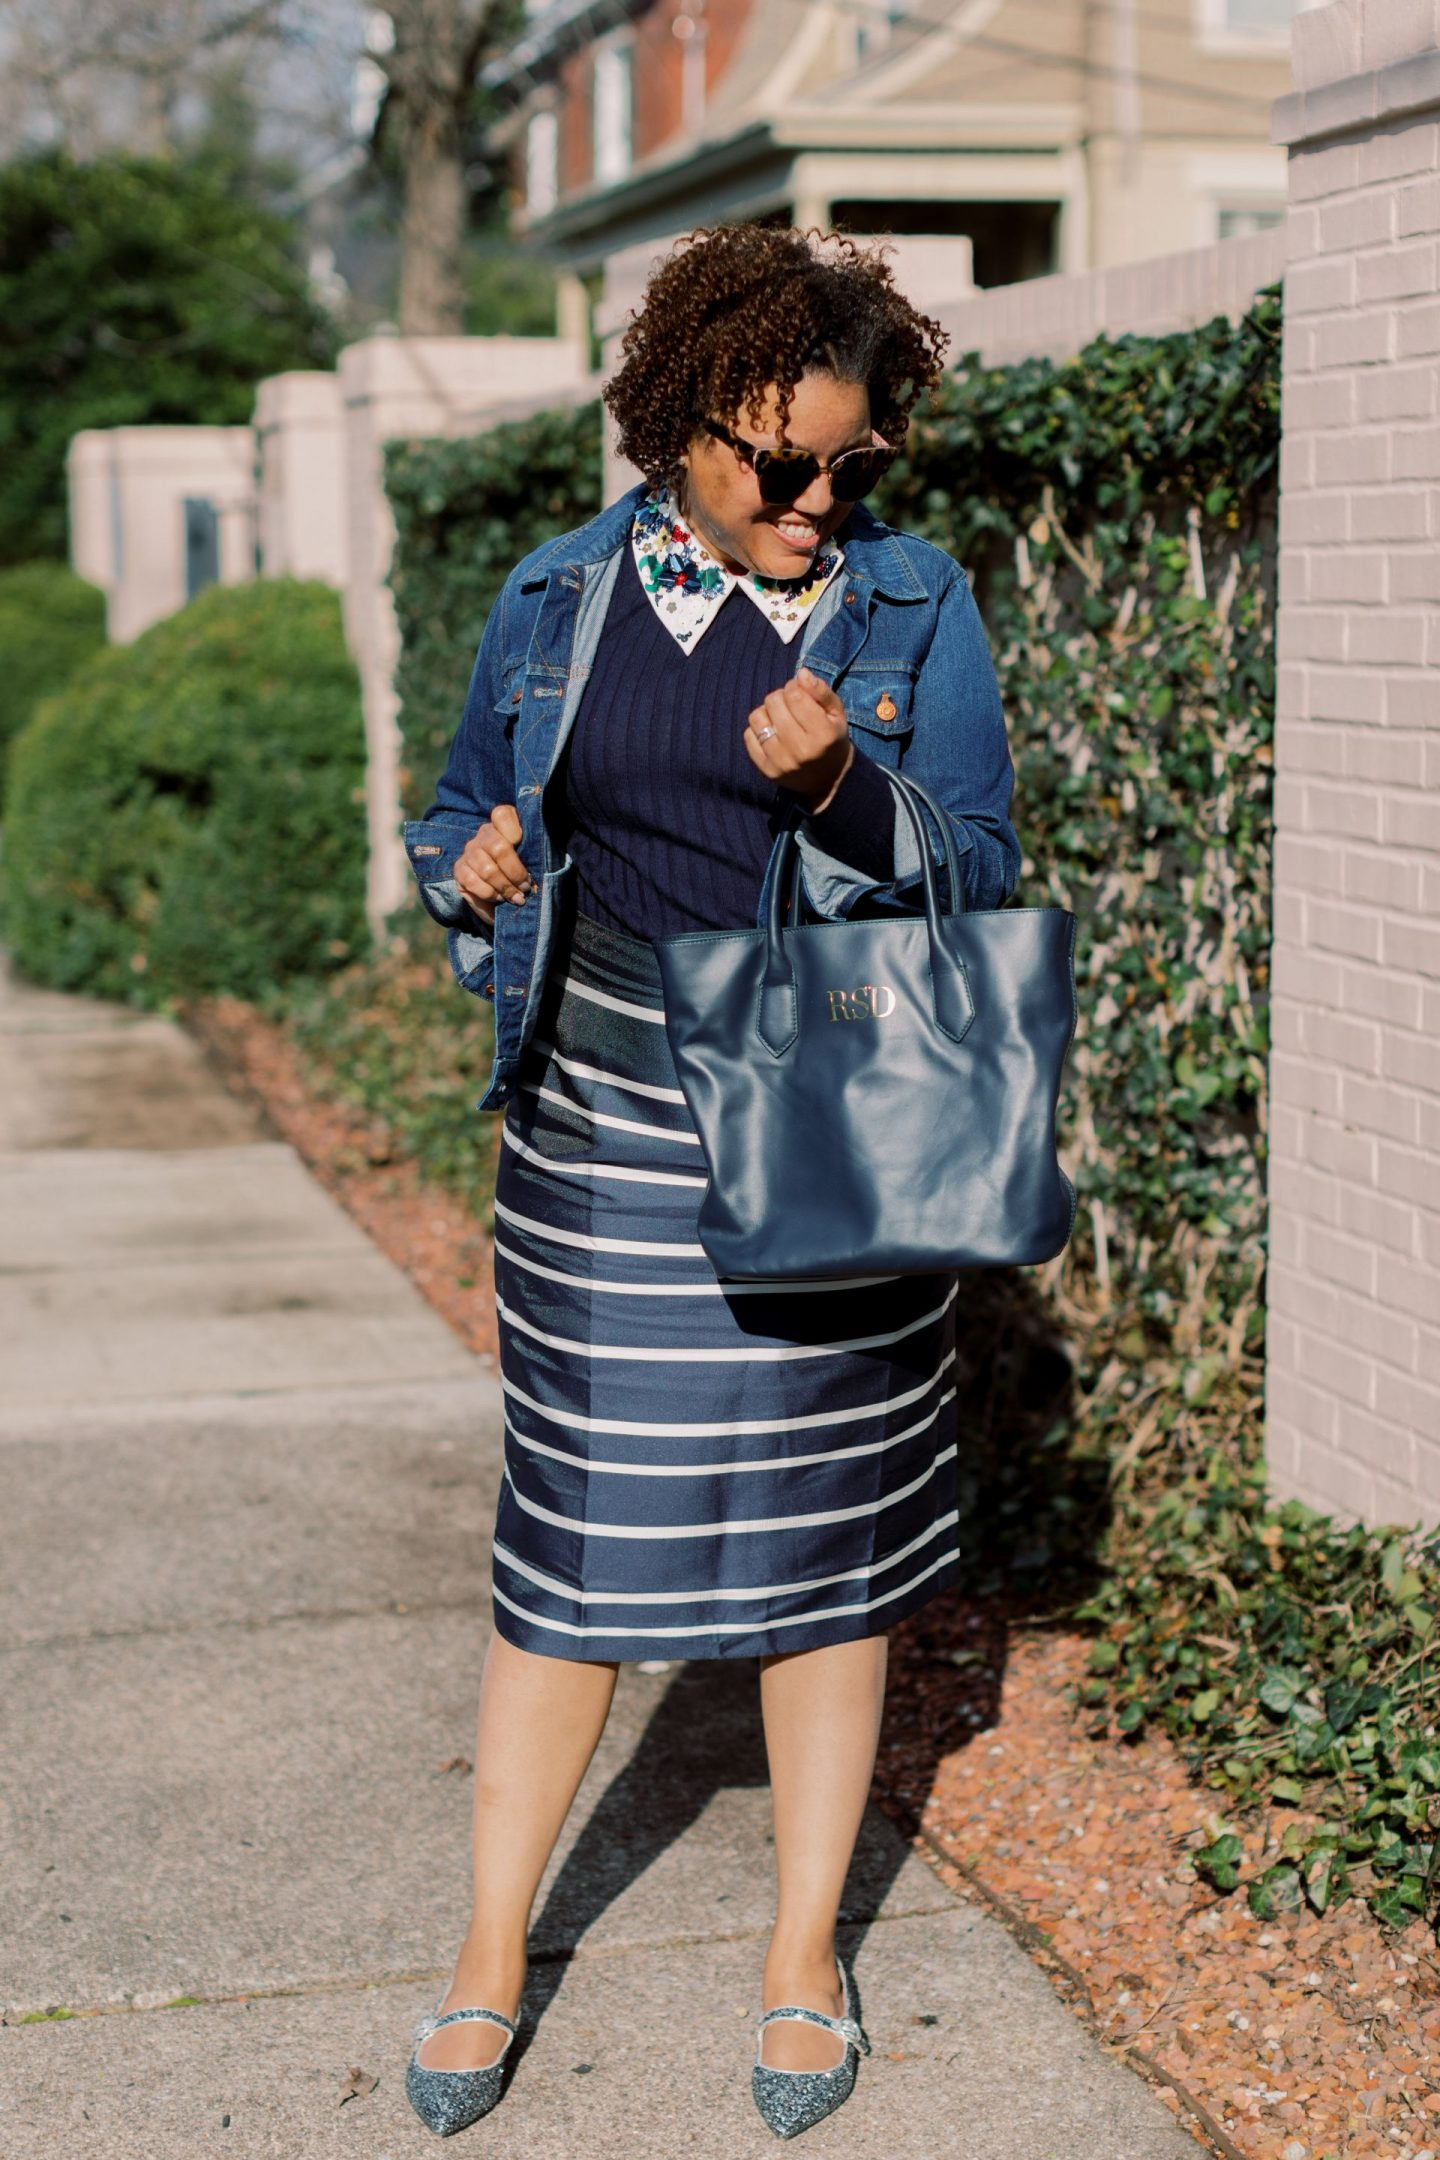 J Crew Tippi Sweater with Embellished Collar styled by top Kentucky fashion blogger, Really Rynetta